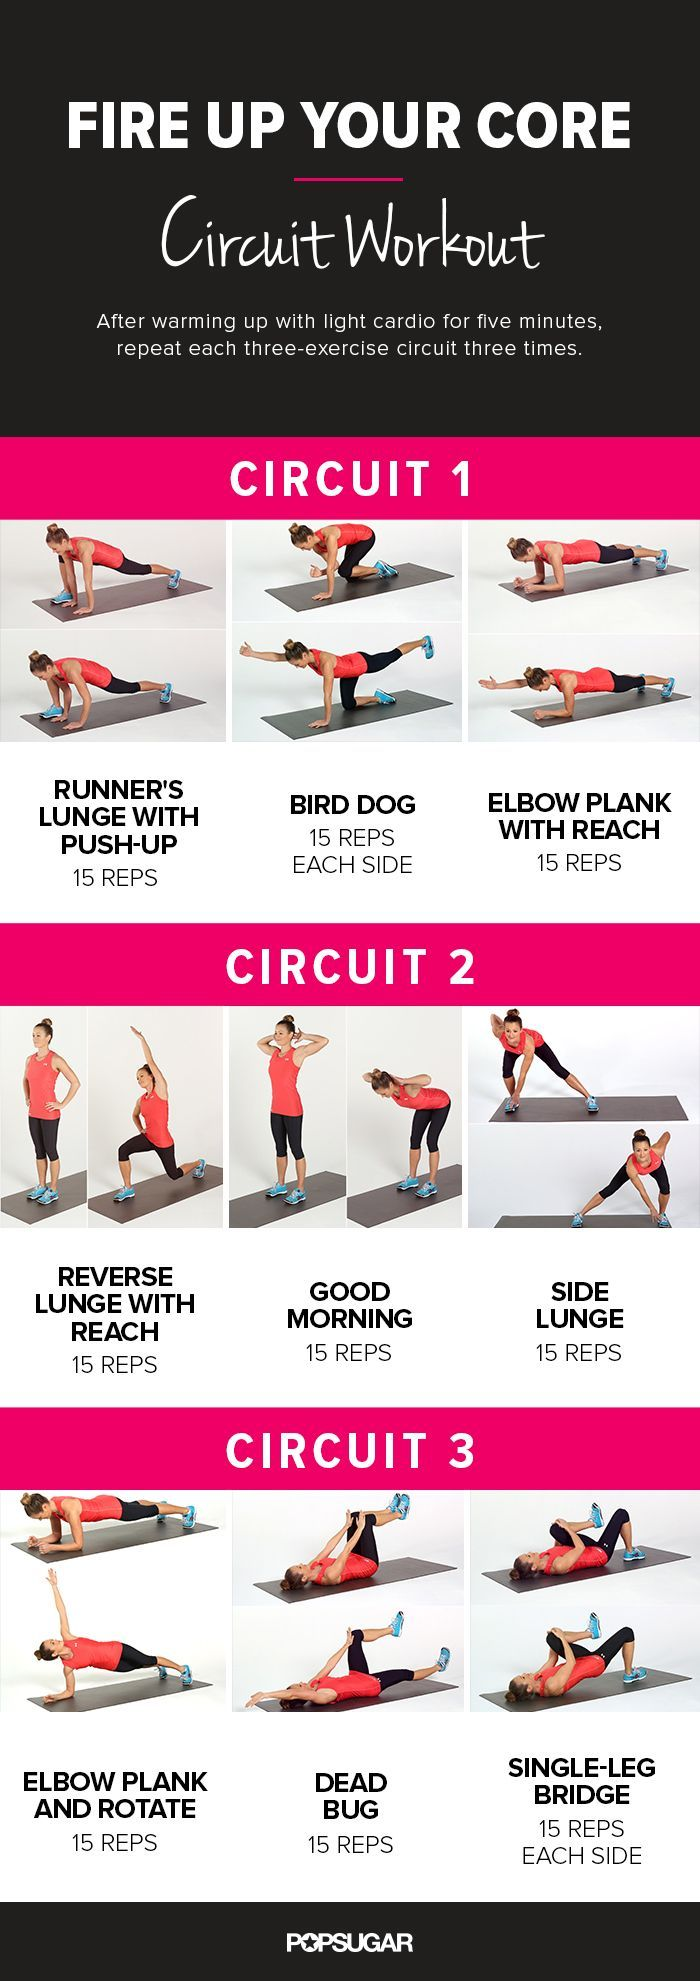 Ab workouts and circuit workouts! So much awesome here!